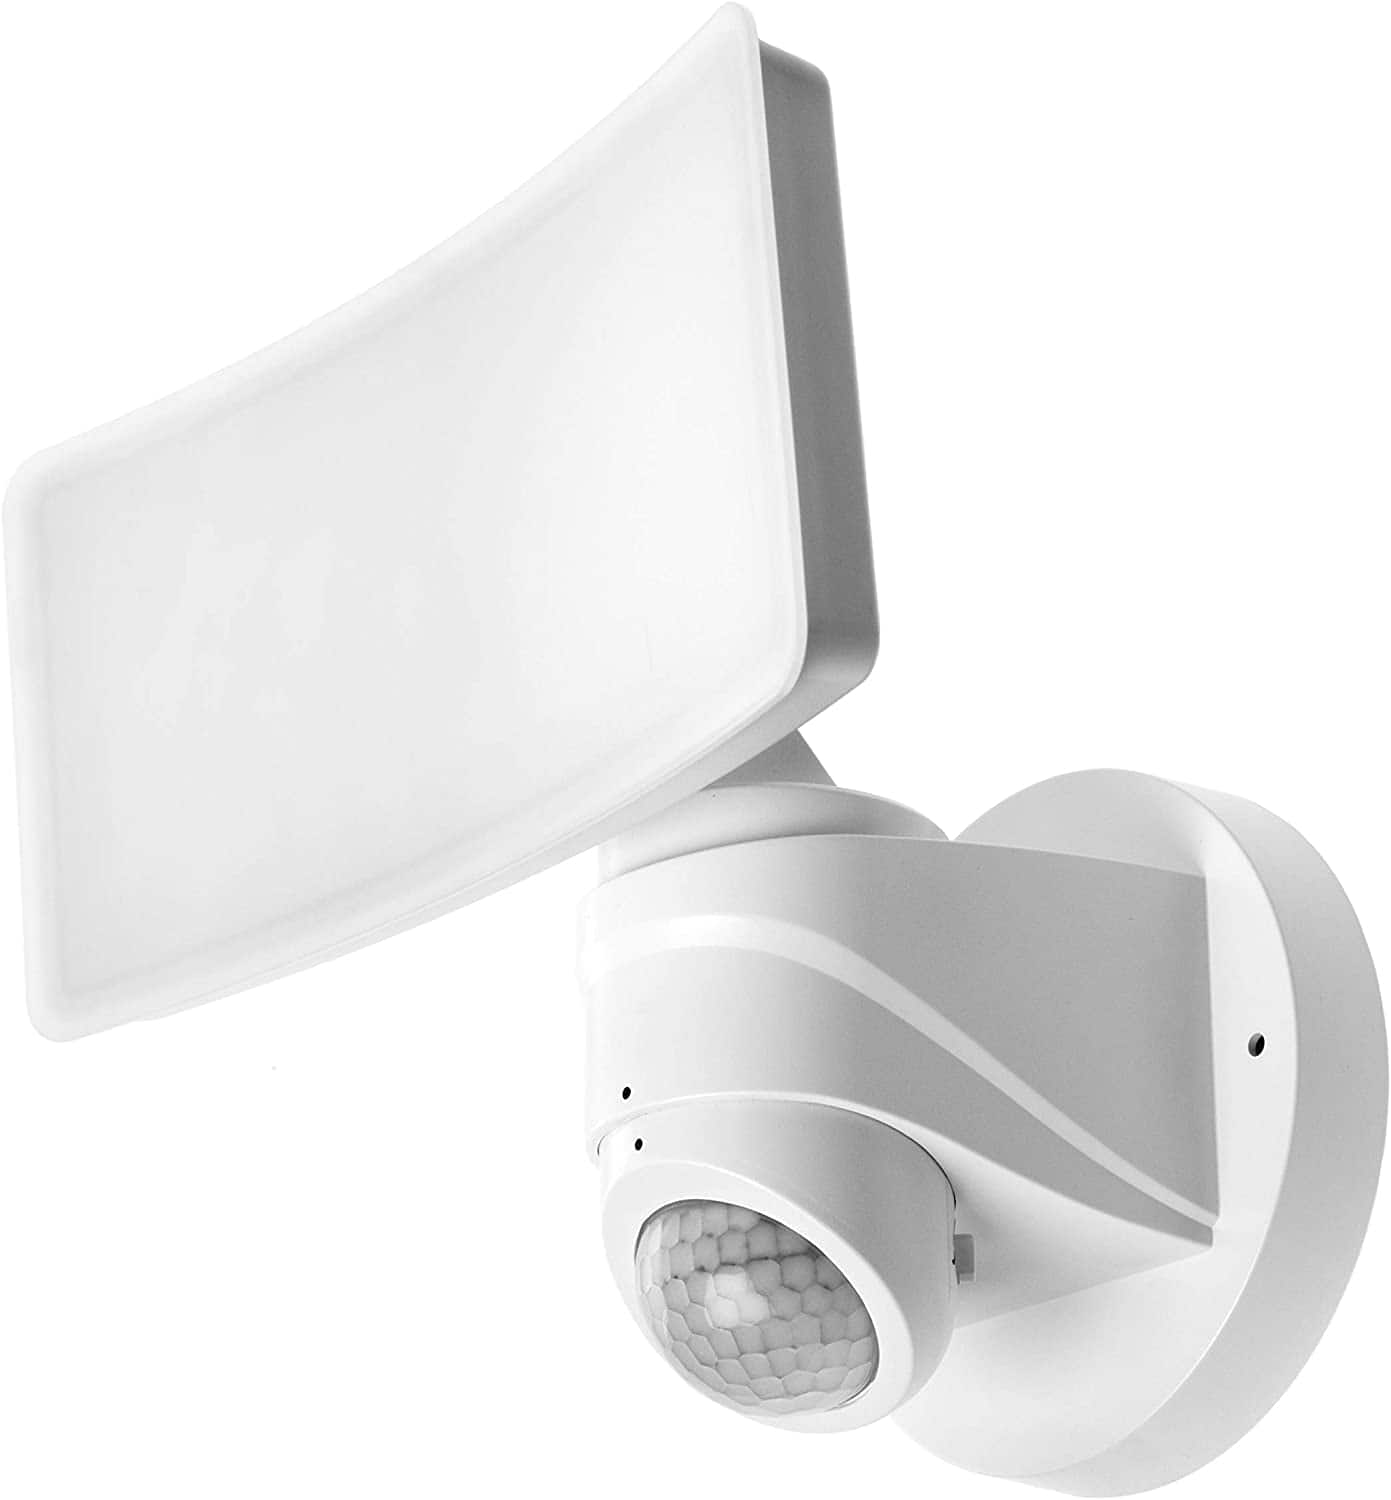 Home Zone Outdoor Security LED Motion Sensor Flood Light for $22.74 + Free Shipping